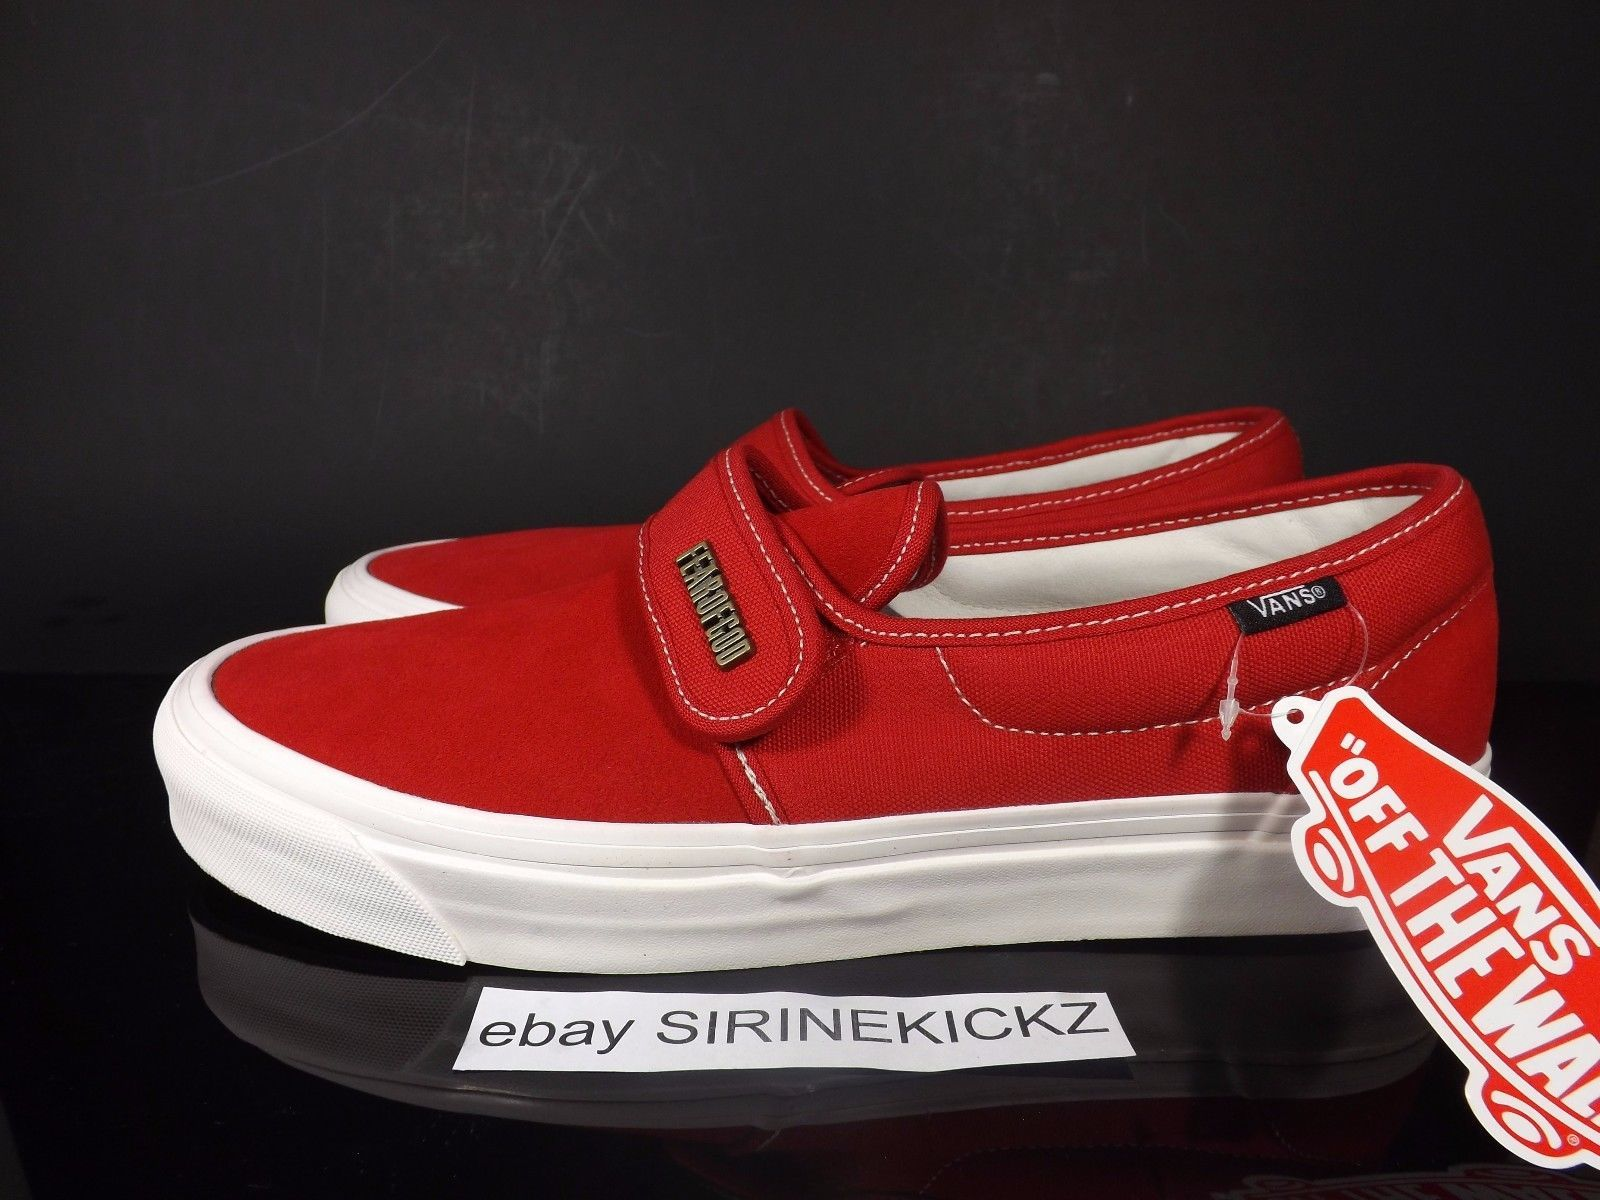 c494a9d424 Fear of God x Vans Vault Slip On Strap 47 V DX - Red Red size 10 US 9 UK